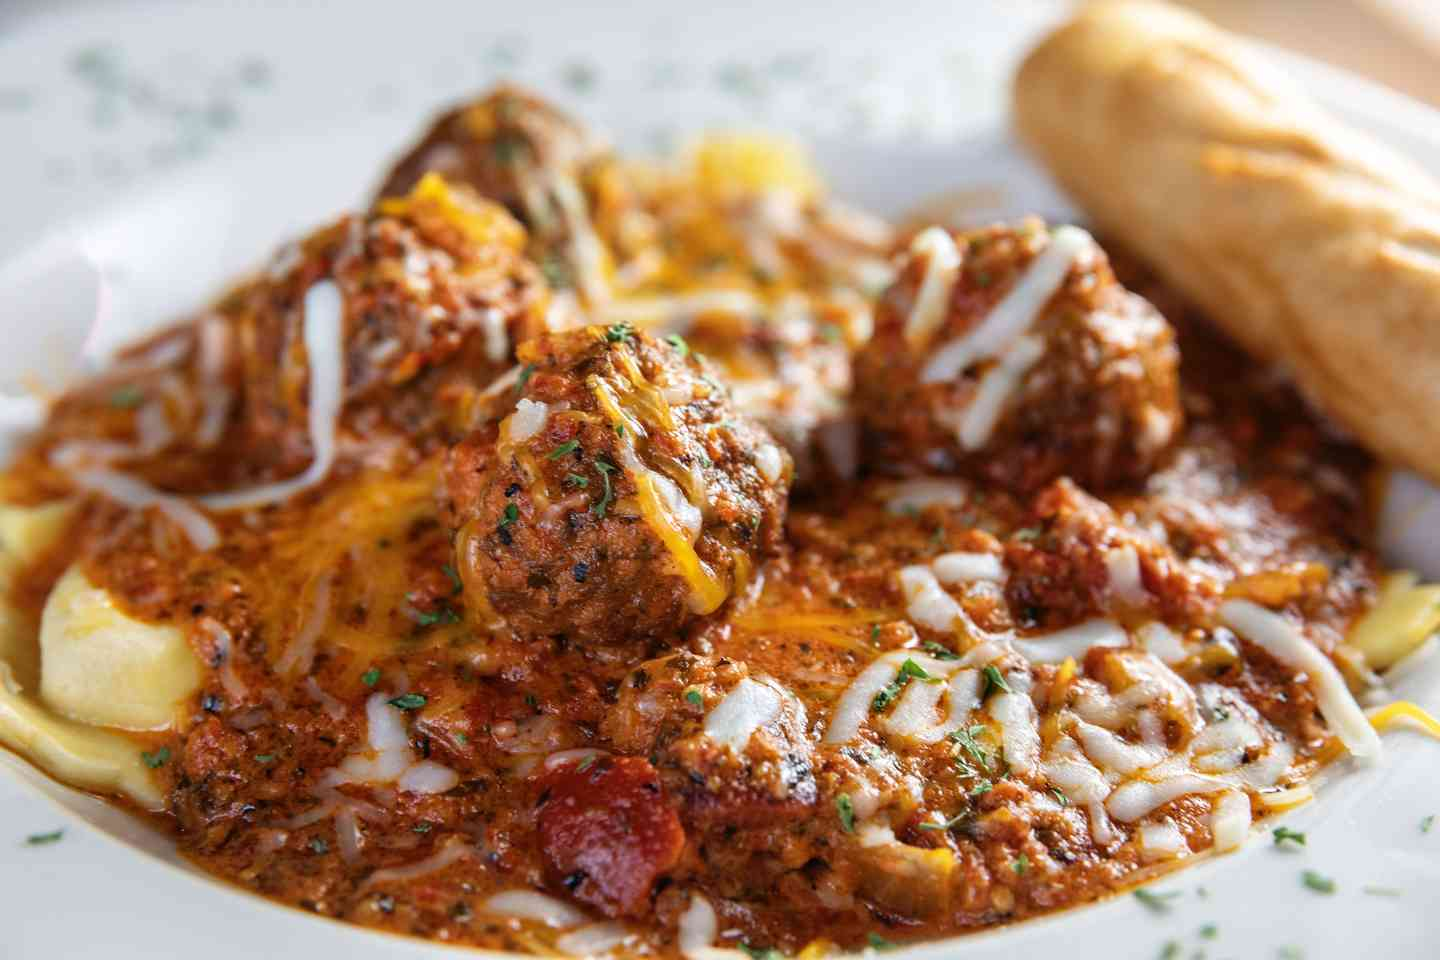 Three Cheese Ravioli with Meatballs